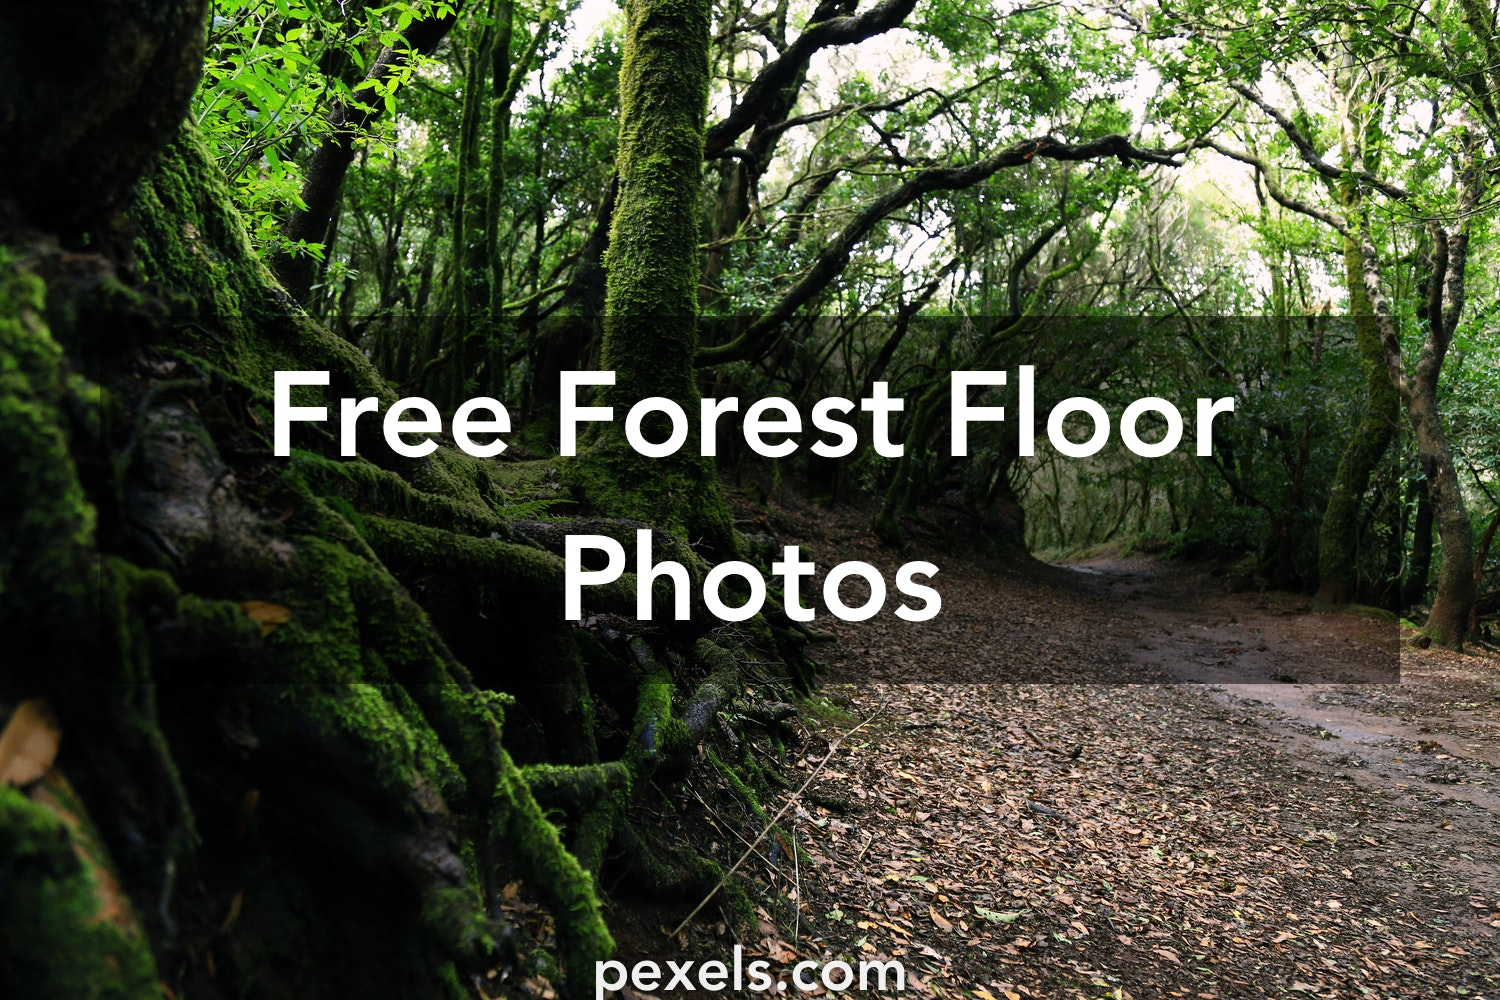 Free stock photos of forest floor pexels for Forest floor definition